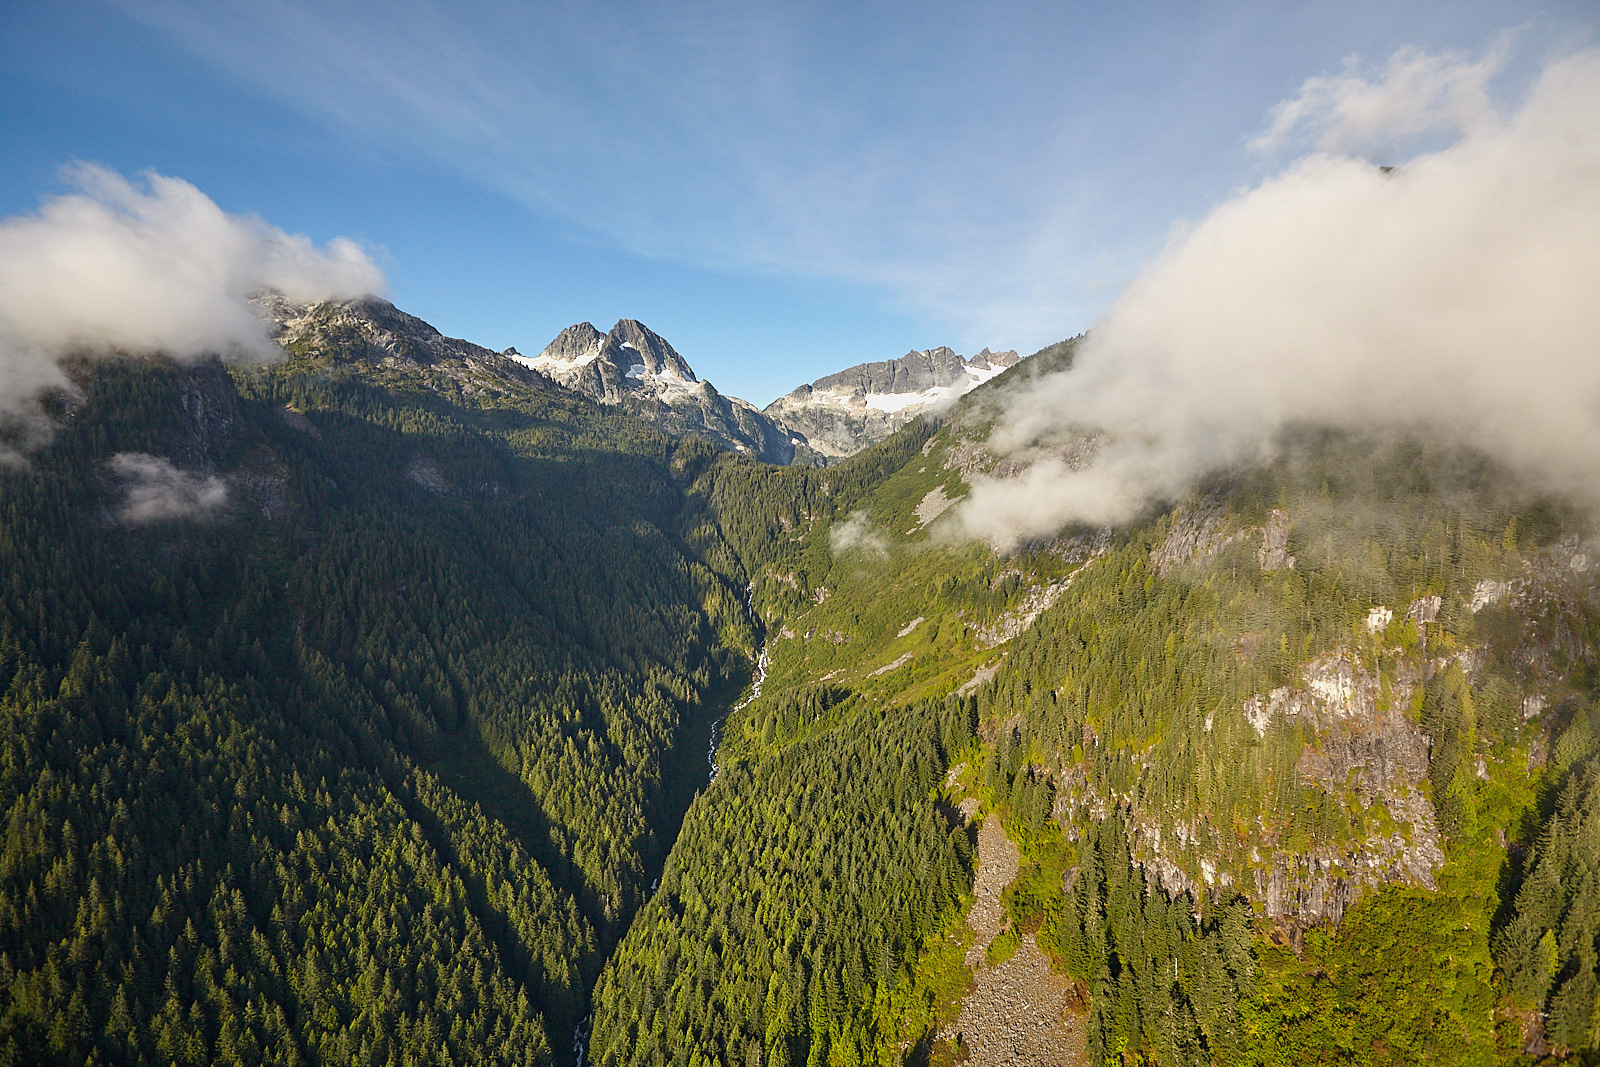 View up the valley as we flew to Haberl Hut. We are aiming for the glacier on the mid-left.